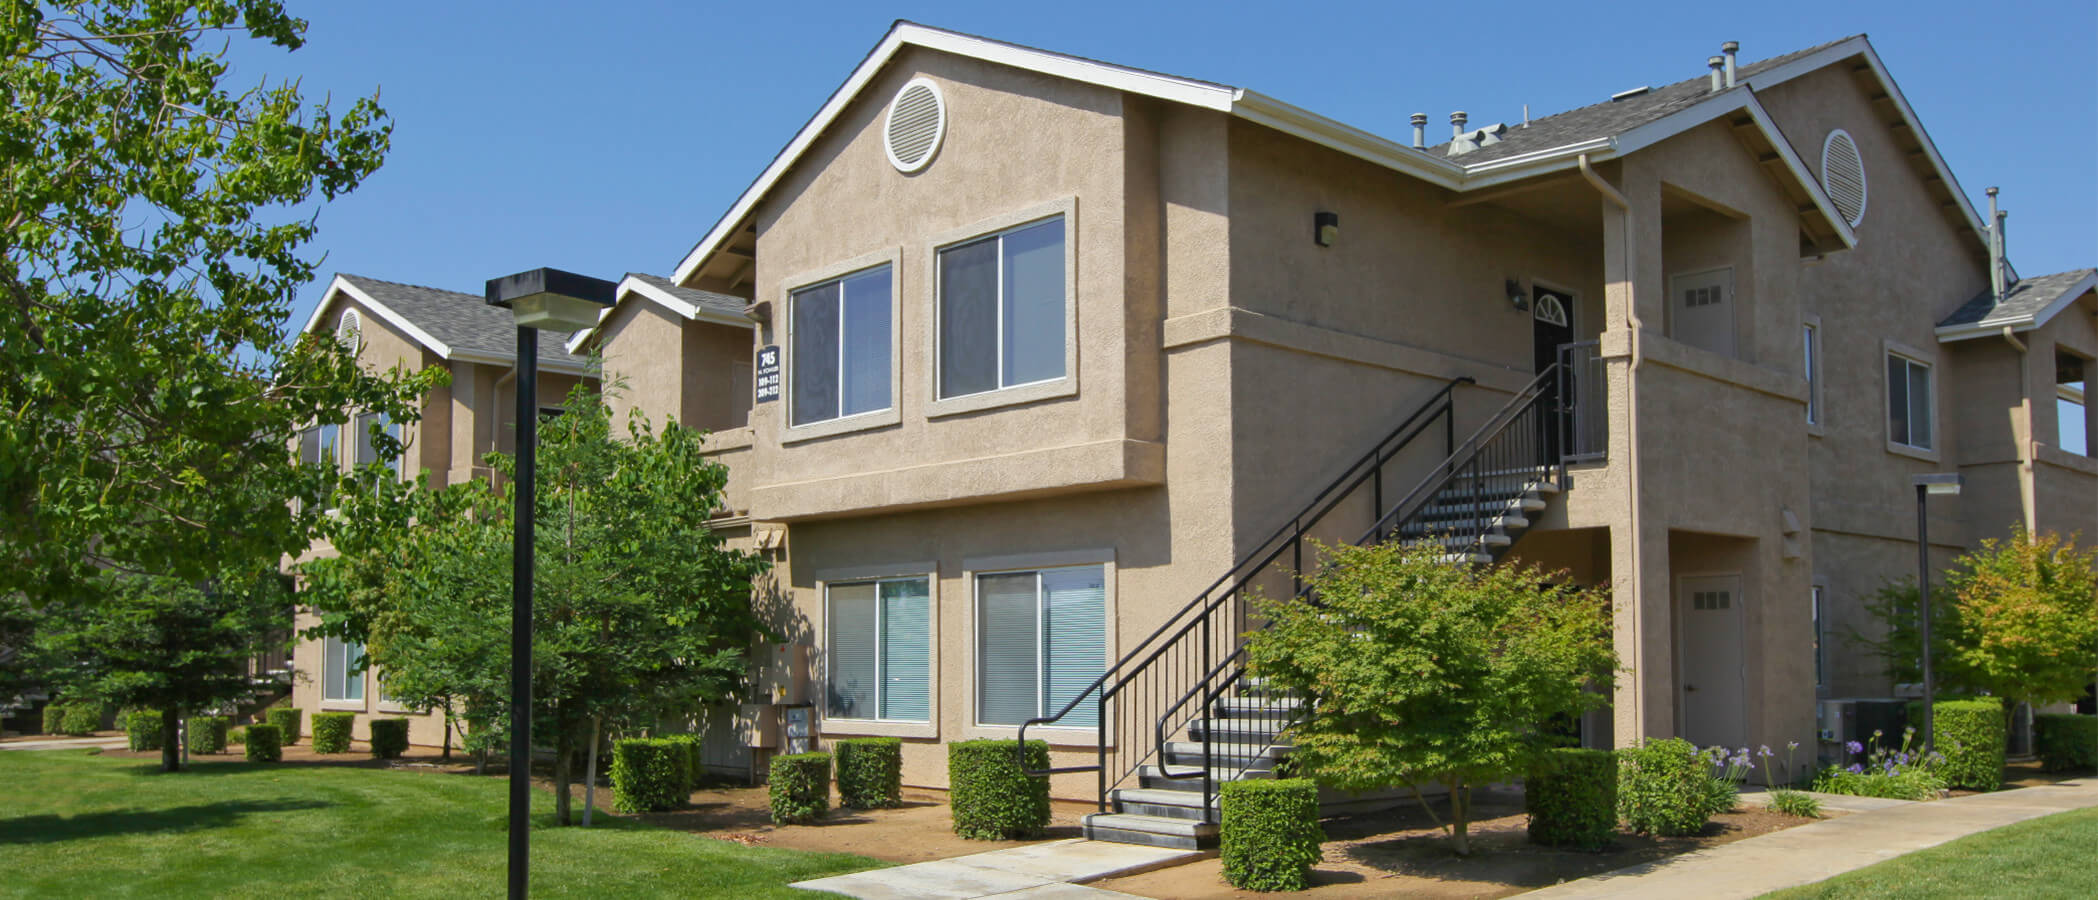 2 Bedroom Apartments In Clovis Ca 28 Images Houses For Rent In Clovis Ca Rentdigs Com Page 4